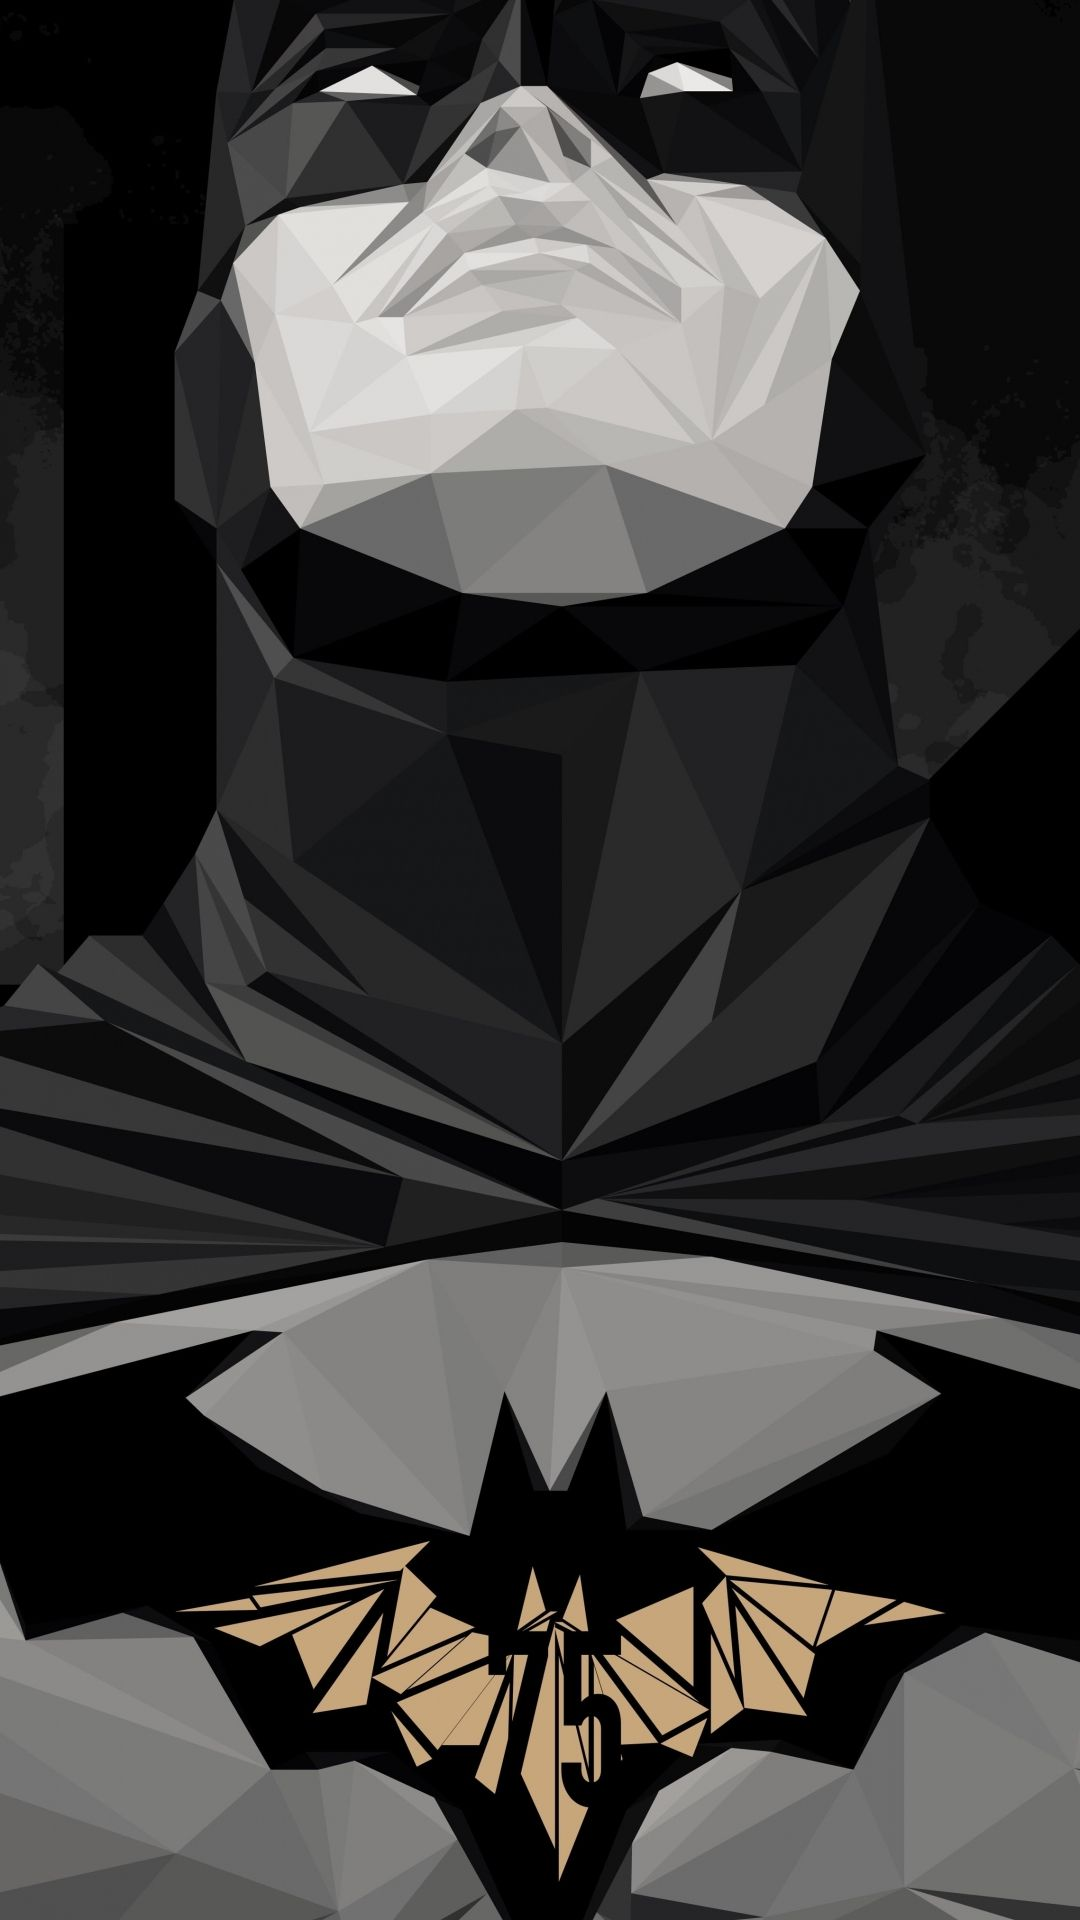 Batman Iphone Wallpapers Top Free Batman Iphone Backgrounds